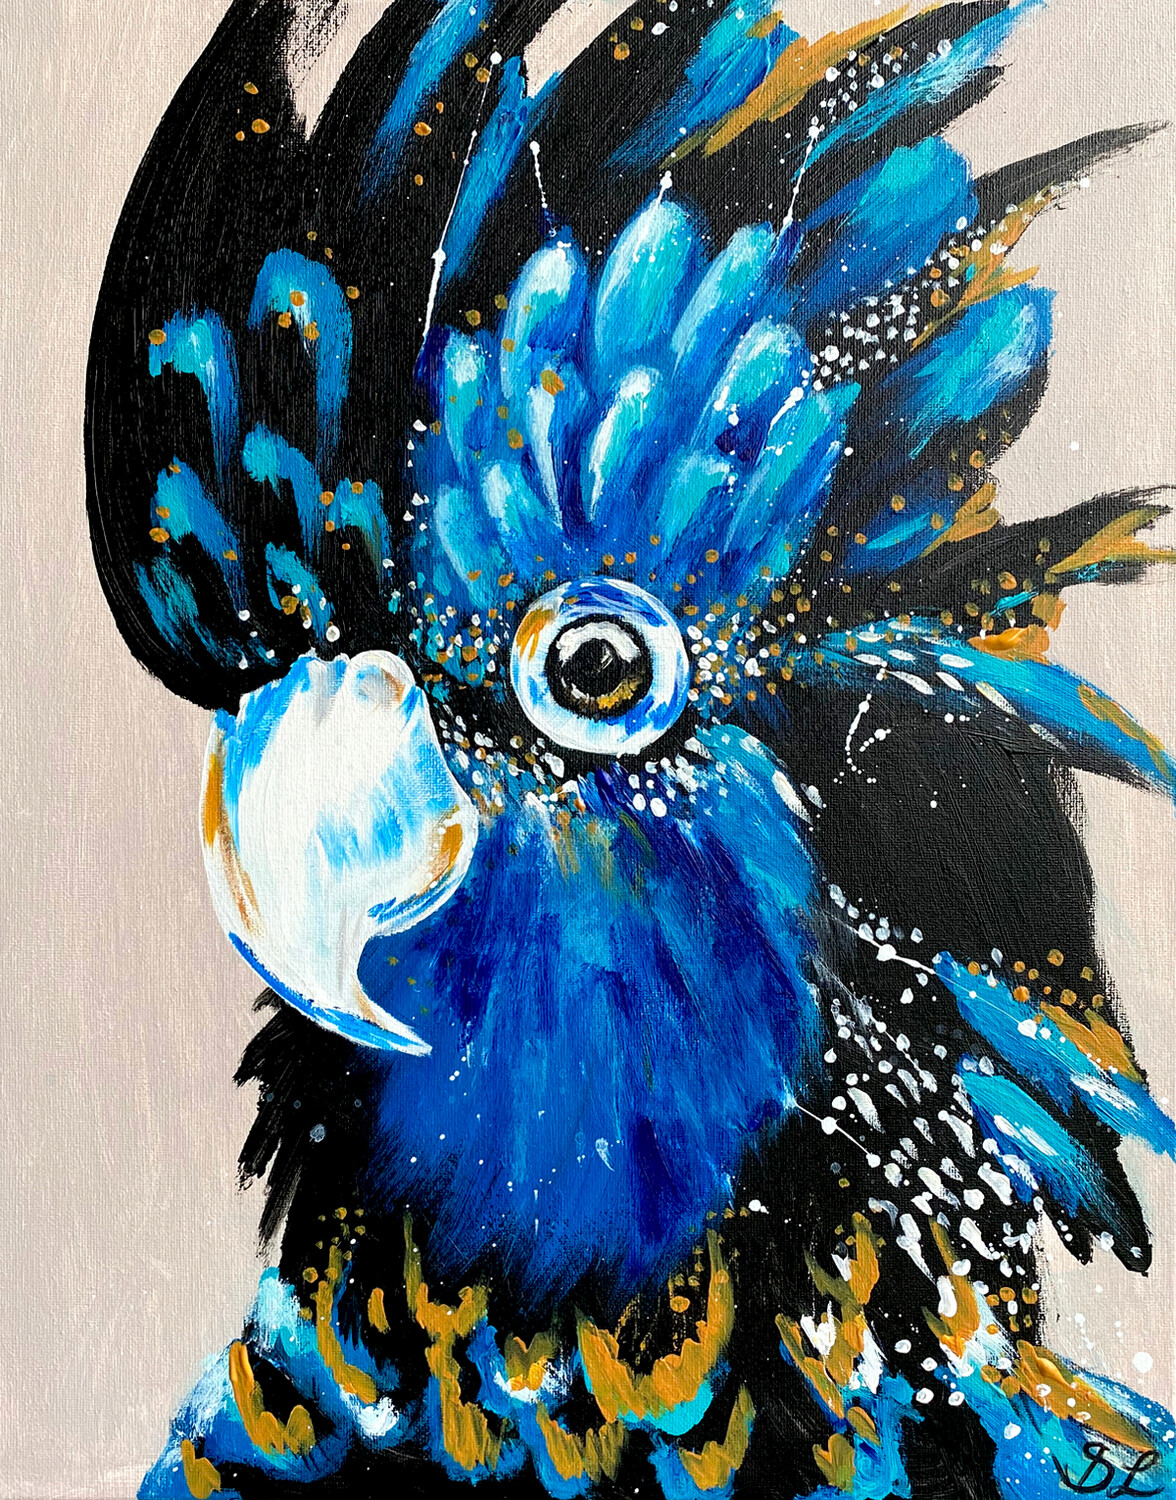 Paint pARTy at The Seed Creative Workshops, 22nd Nov 2-4pm